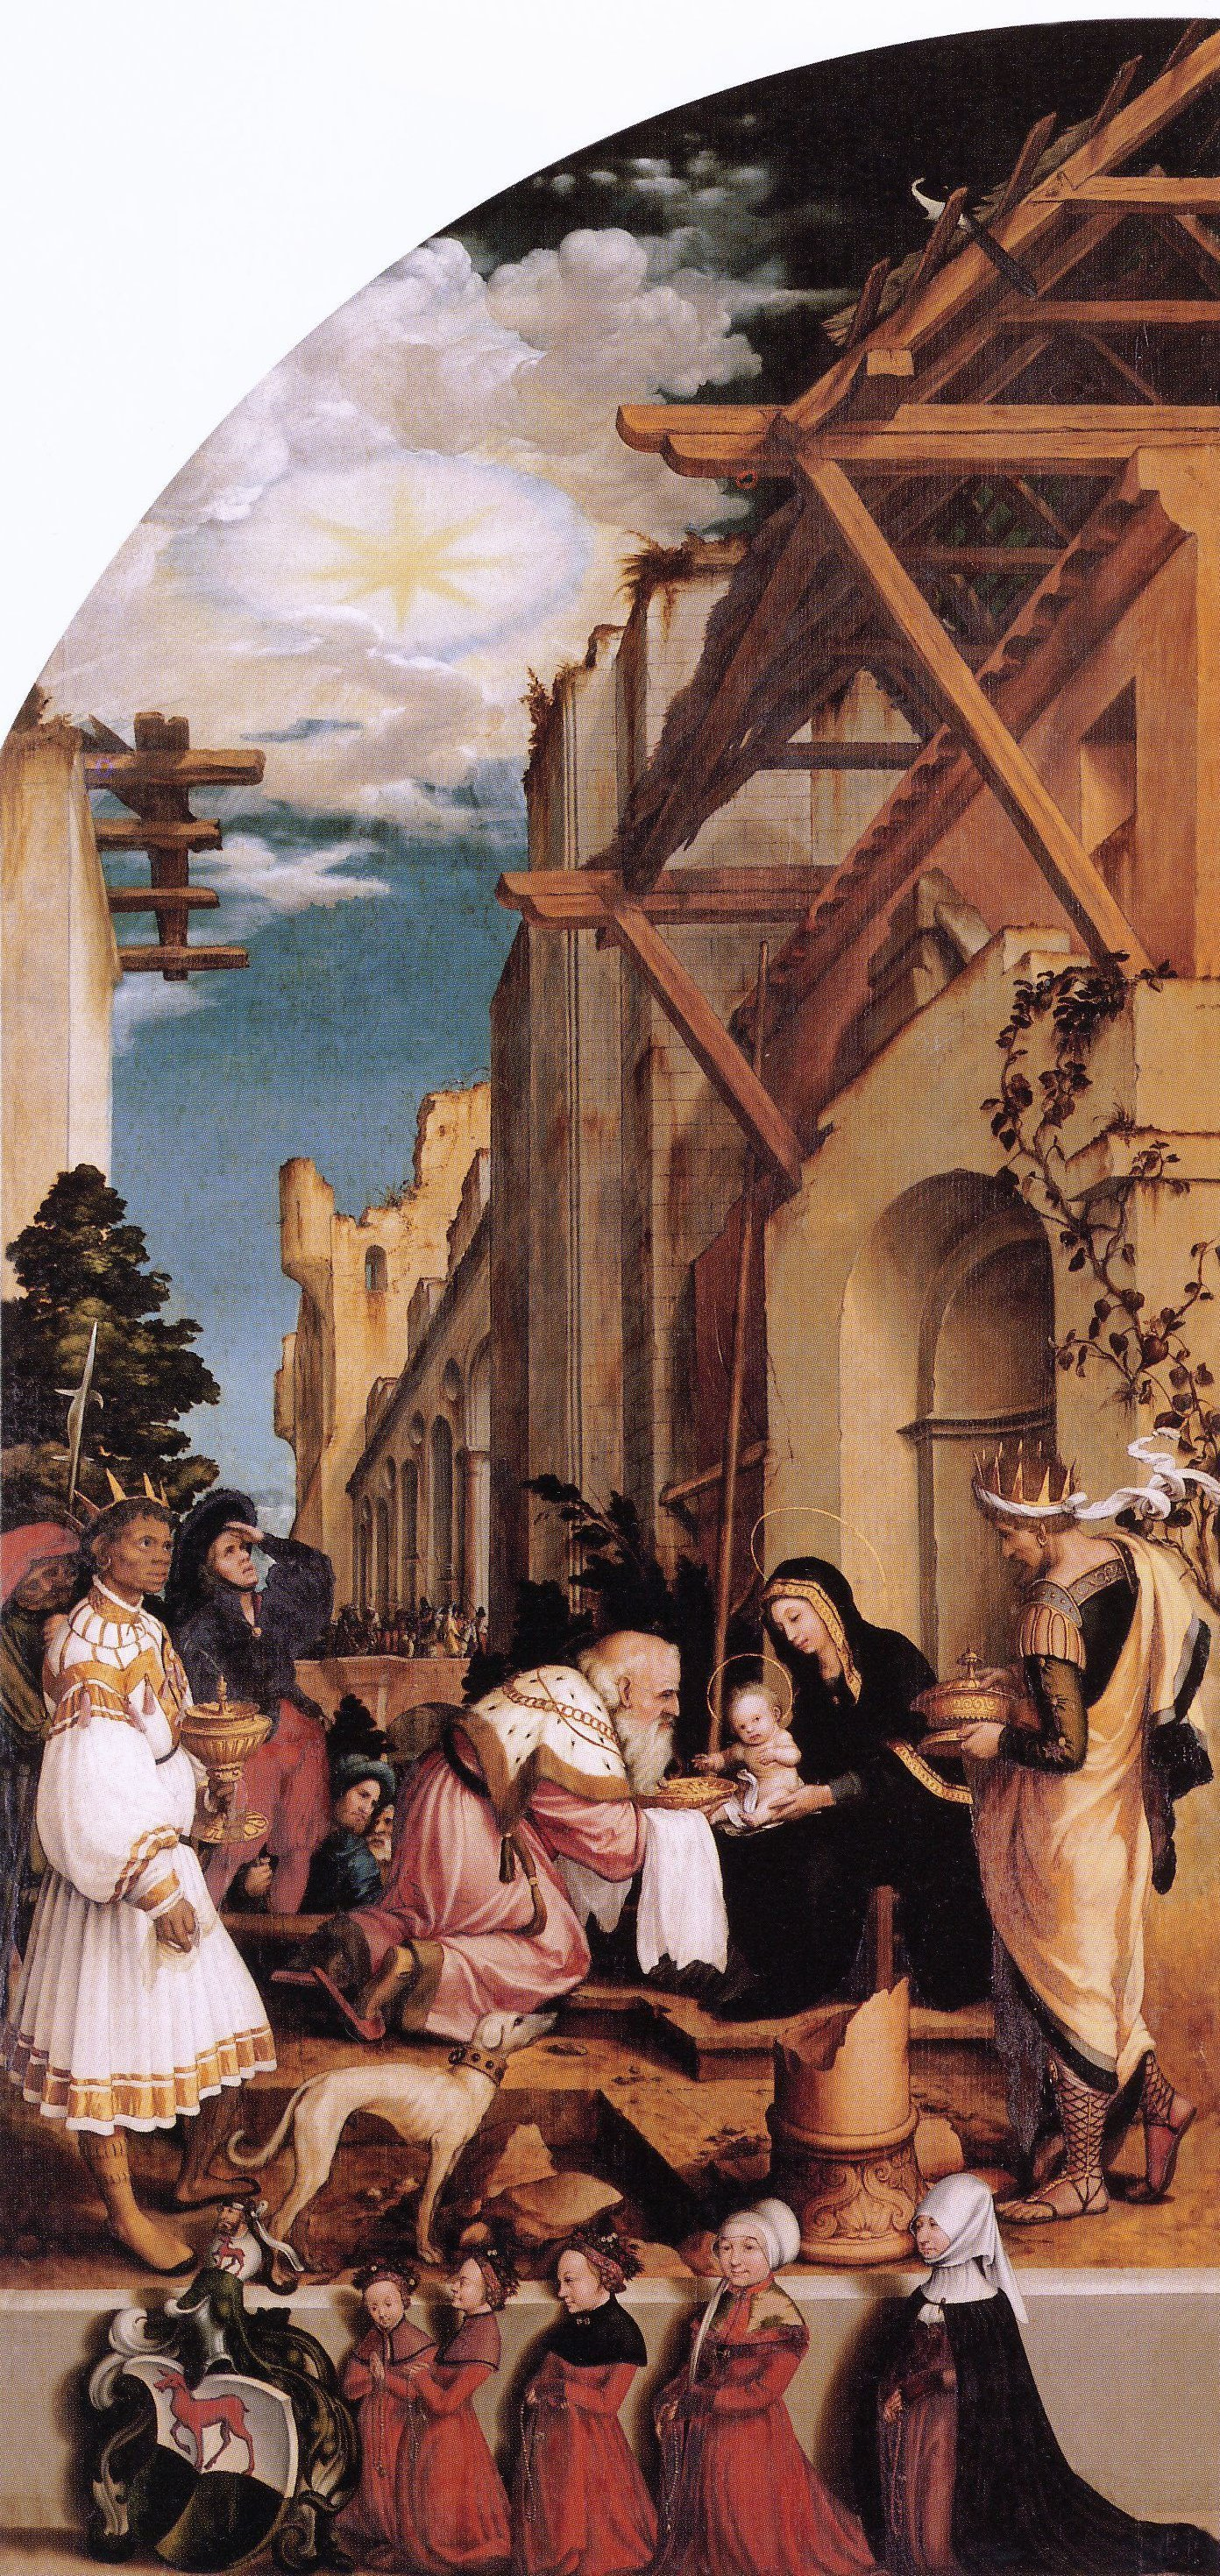 Oberried Altarpiece, left interior wing The Adoration of the Magi. c.1520